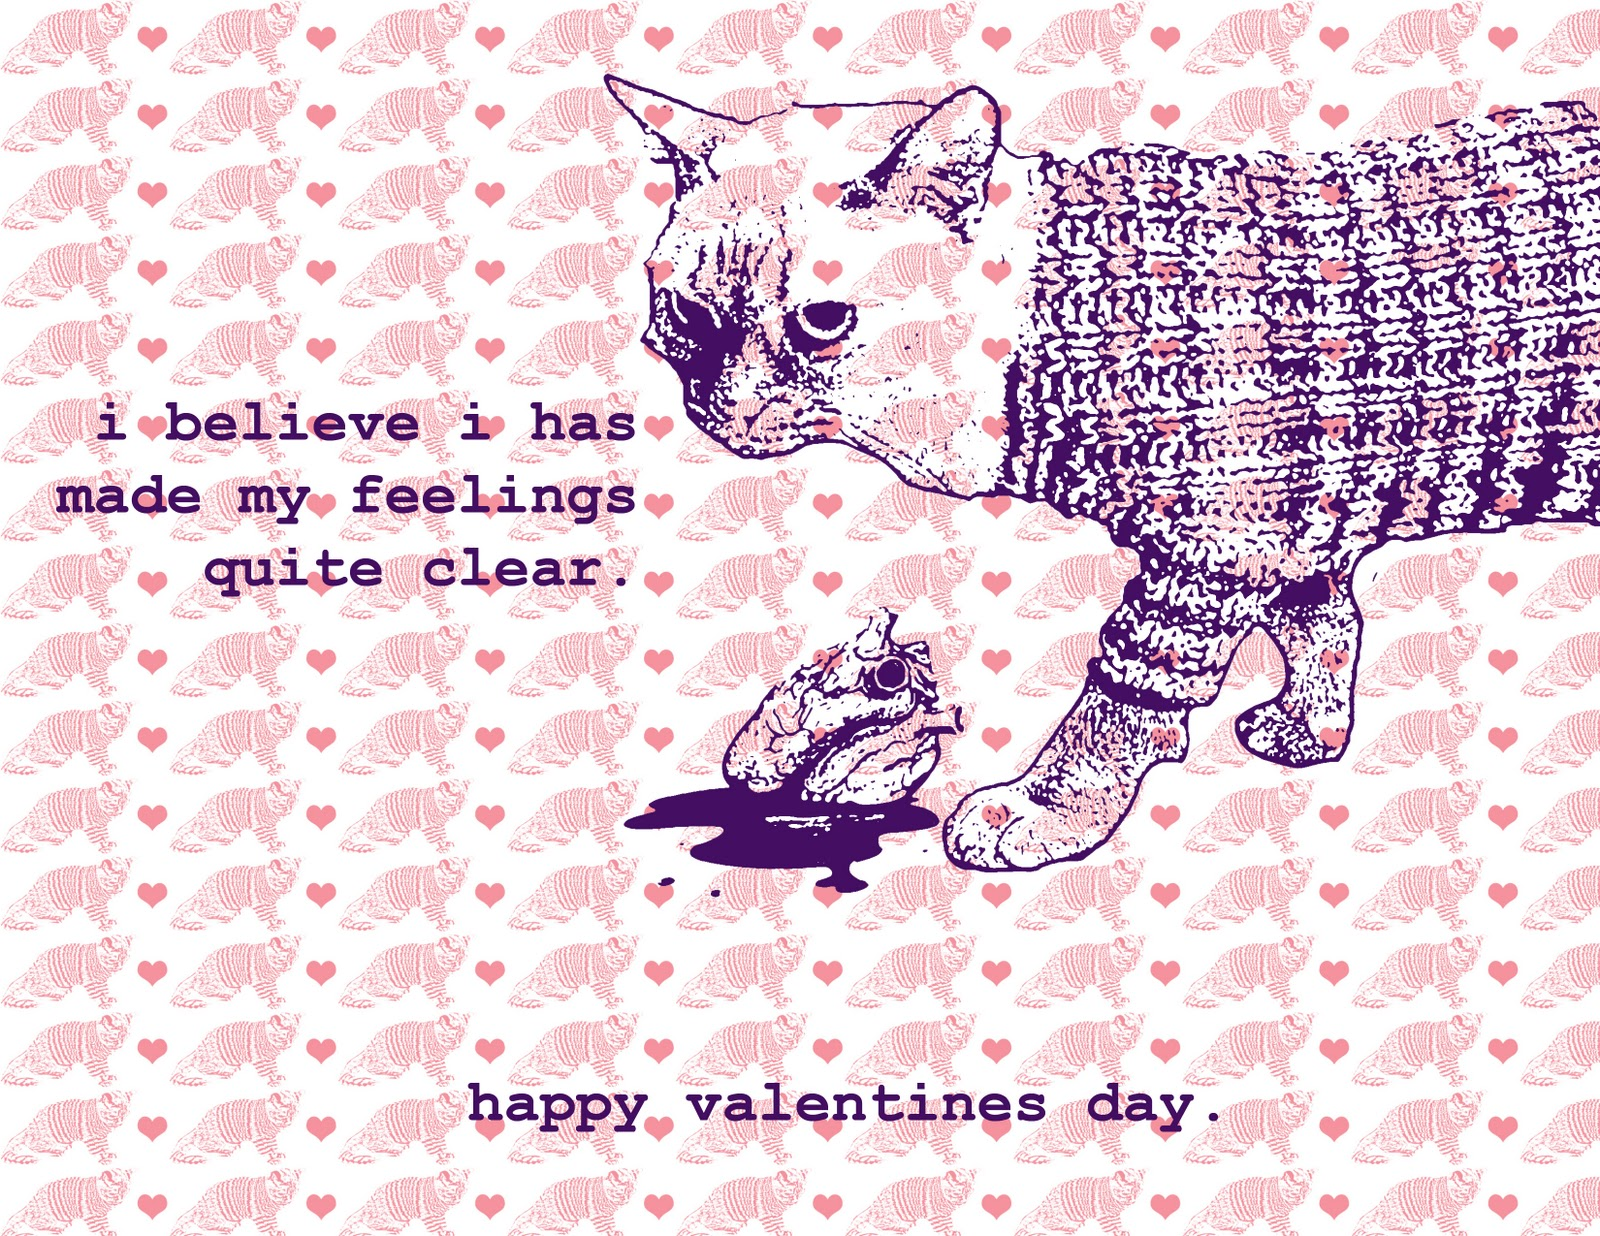 kittyvalentine ... Wednesday after a series of missteps by key team members.